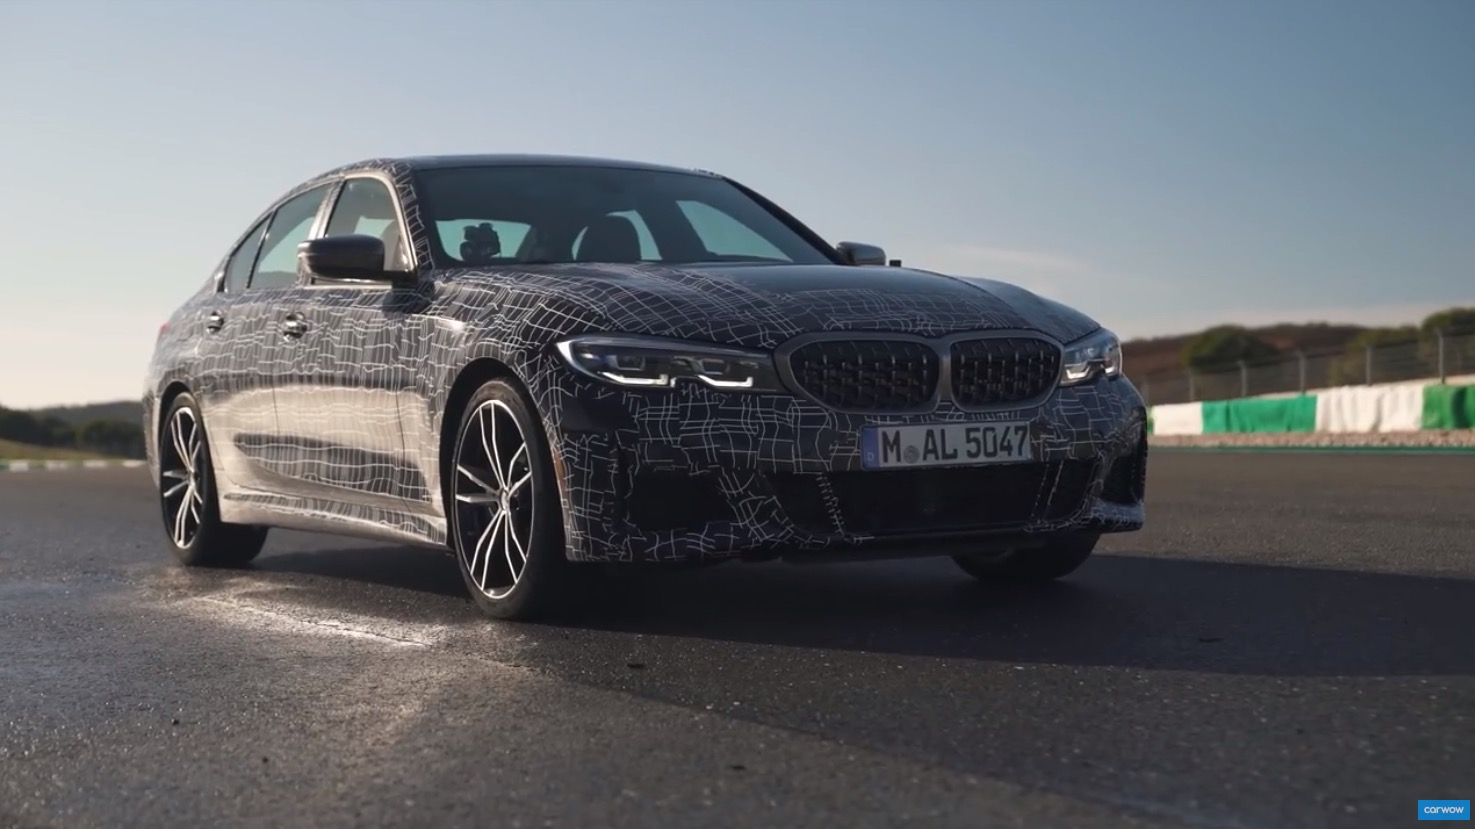 M340i Lays Down 12.6s Quarter Mile As Measured By Carwow